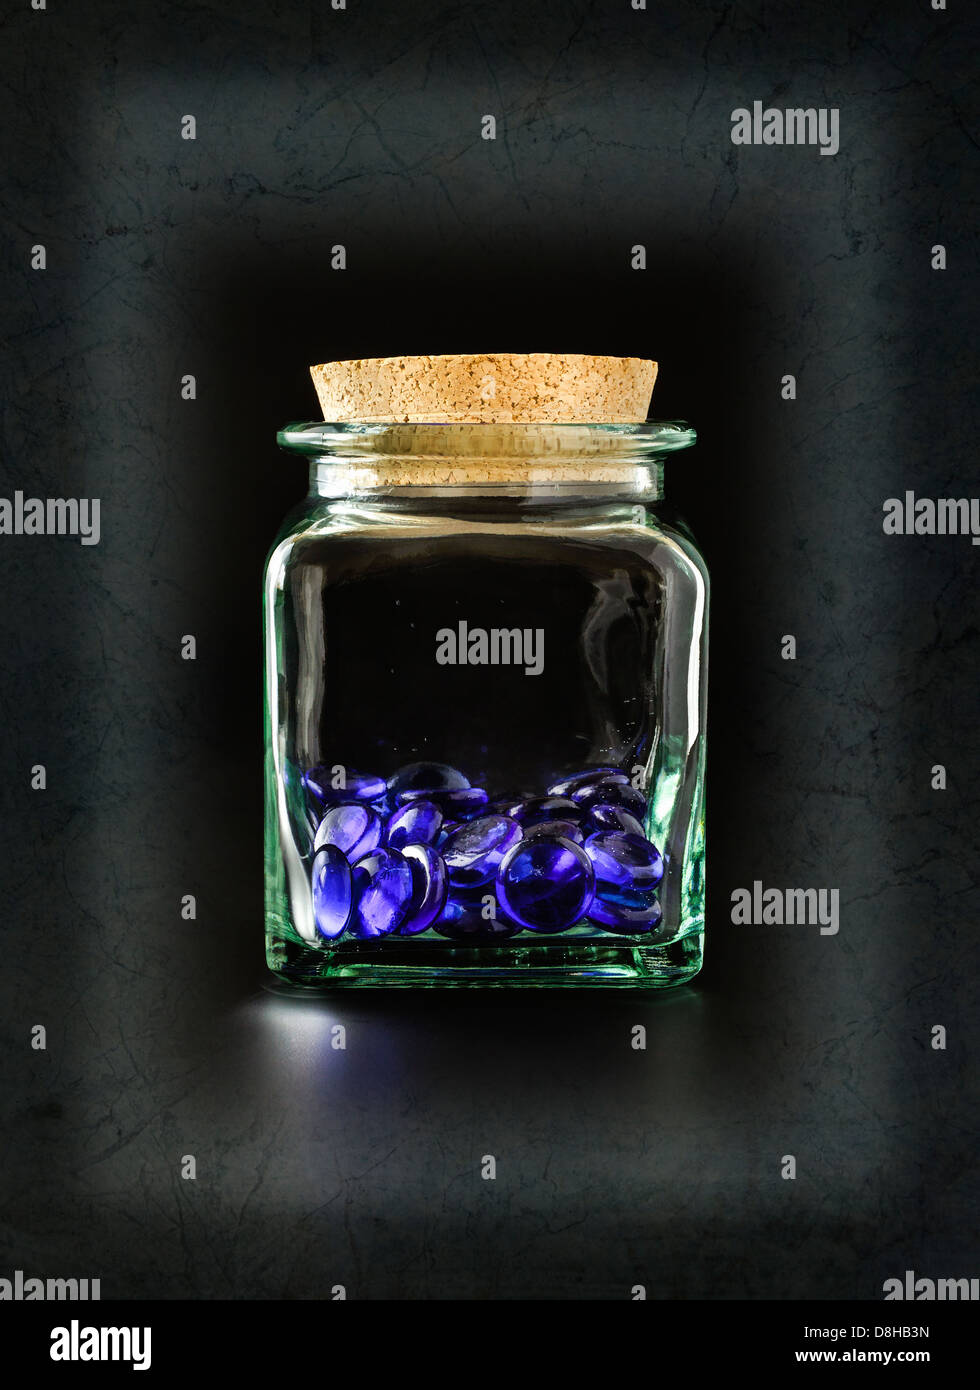 Decorative blue glass stones in glass container - Stock Image